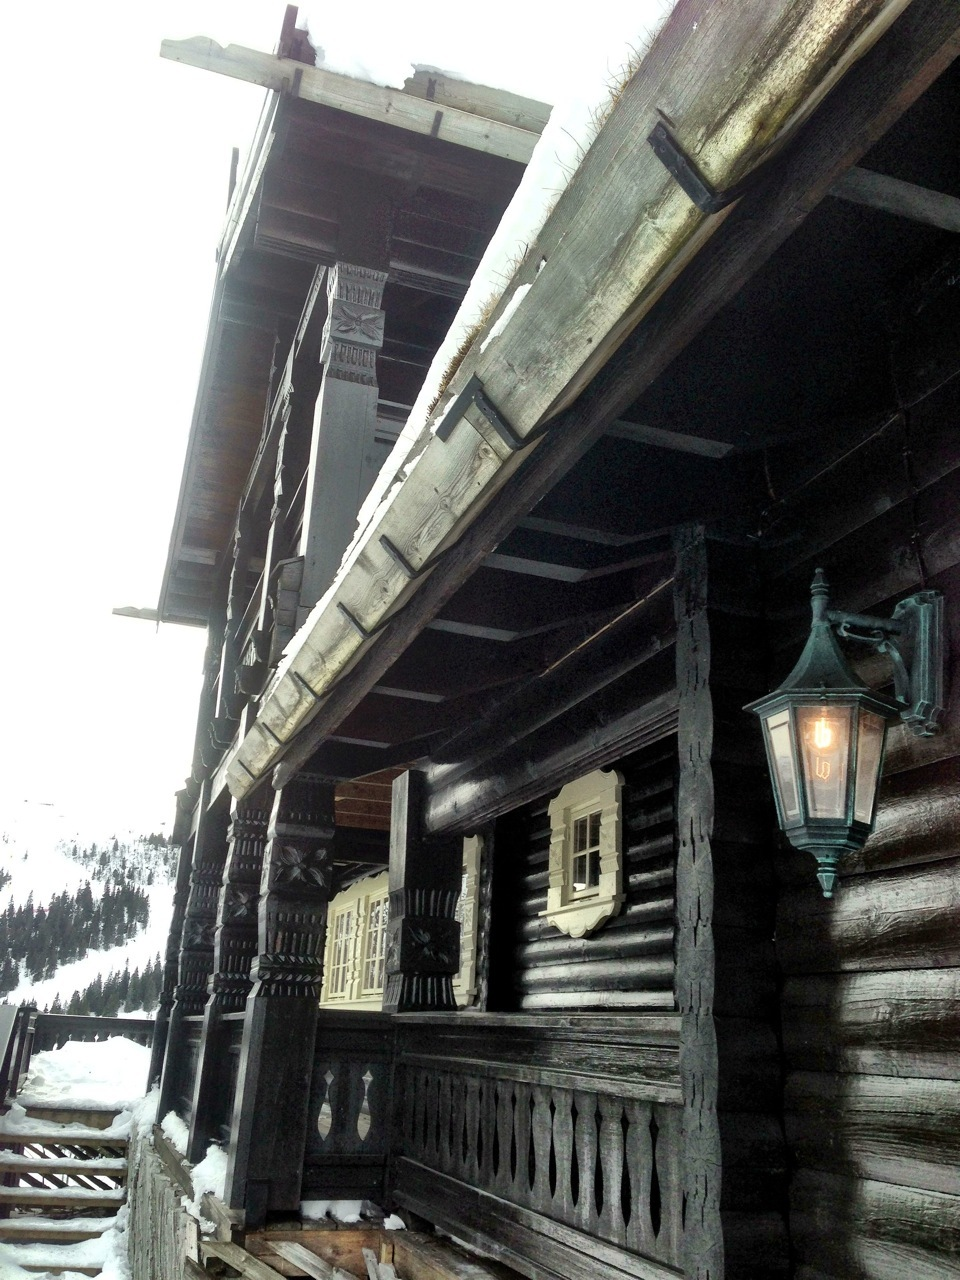 The ski chalets in Kvitfjell, Norway are quite different than the one's near Travis' home mountain of Squaw Valley.